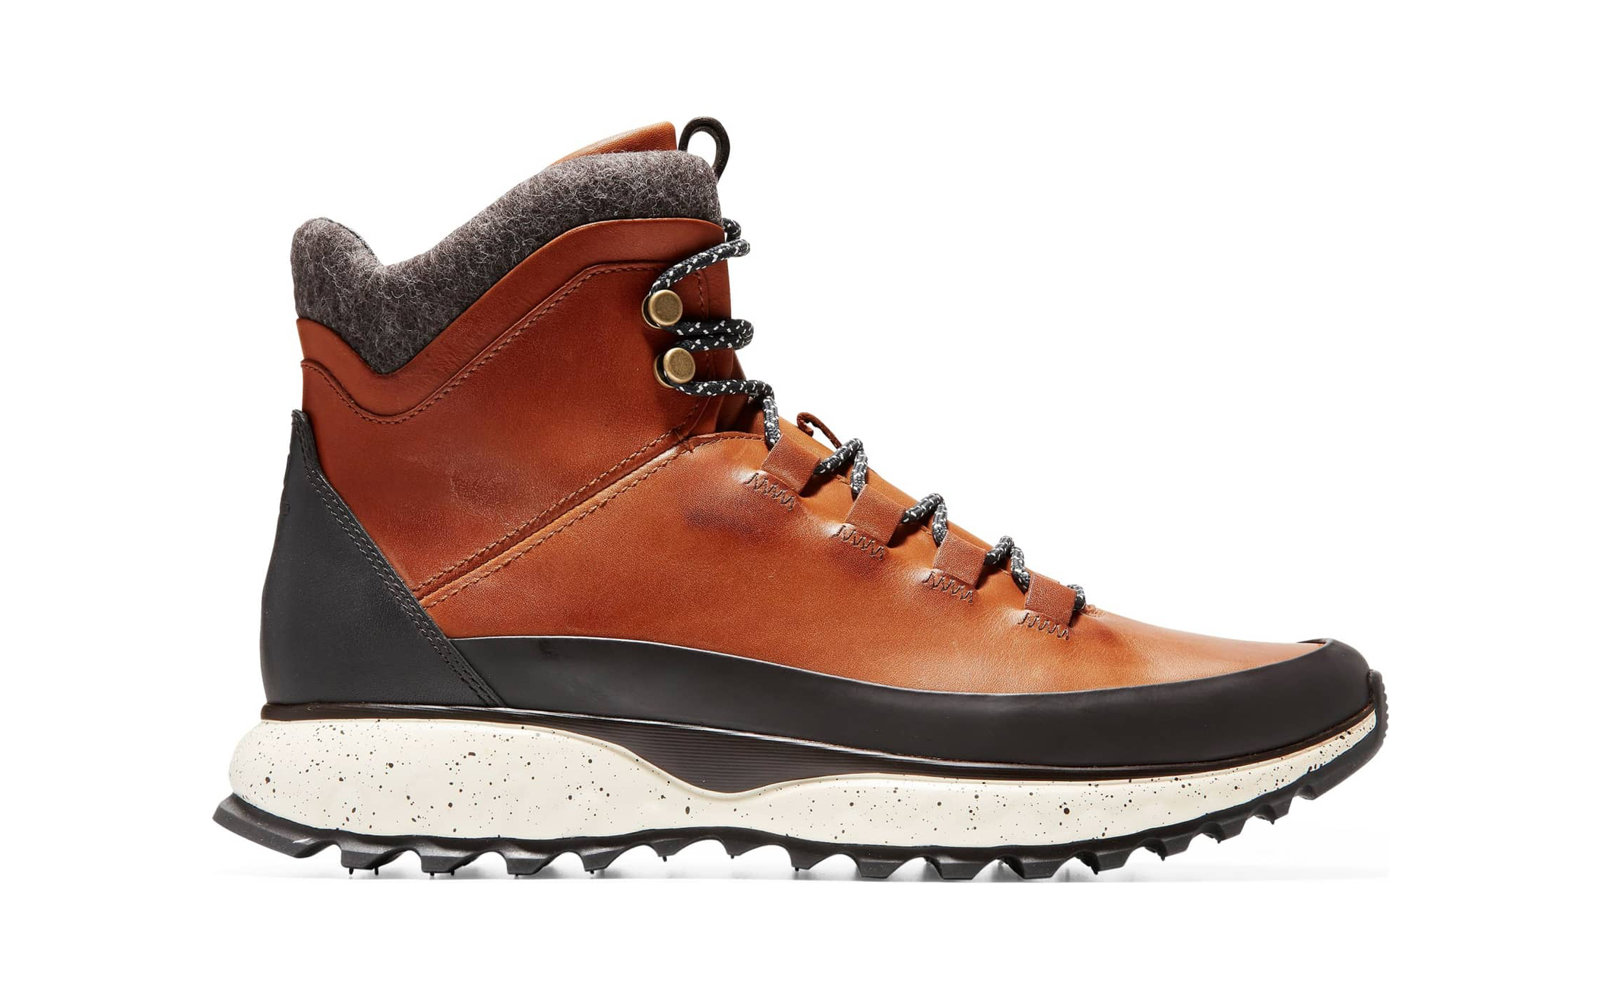 Best Snow Boots: Cole Haan ZeroGrand Explore All Terrain Waterproof Boot